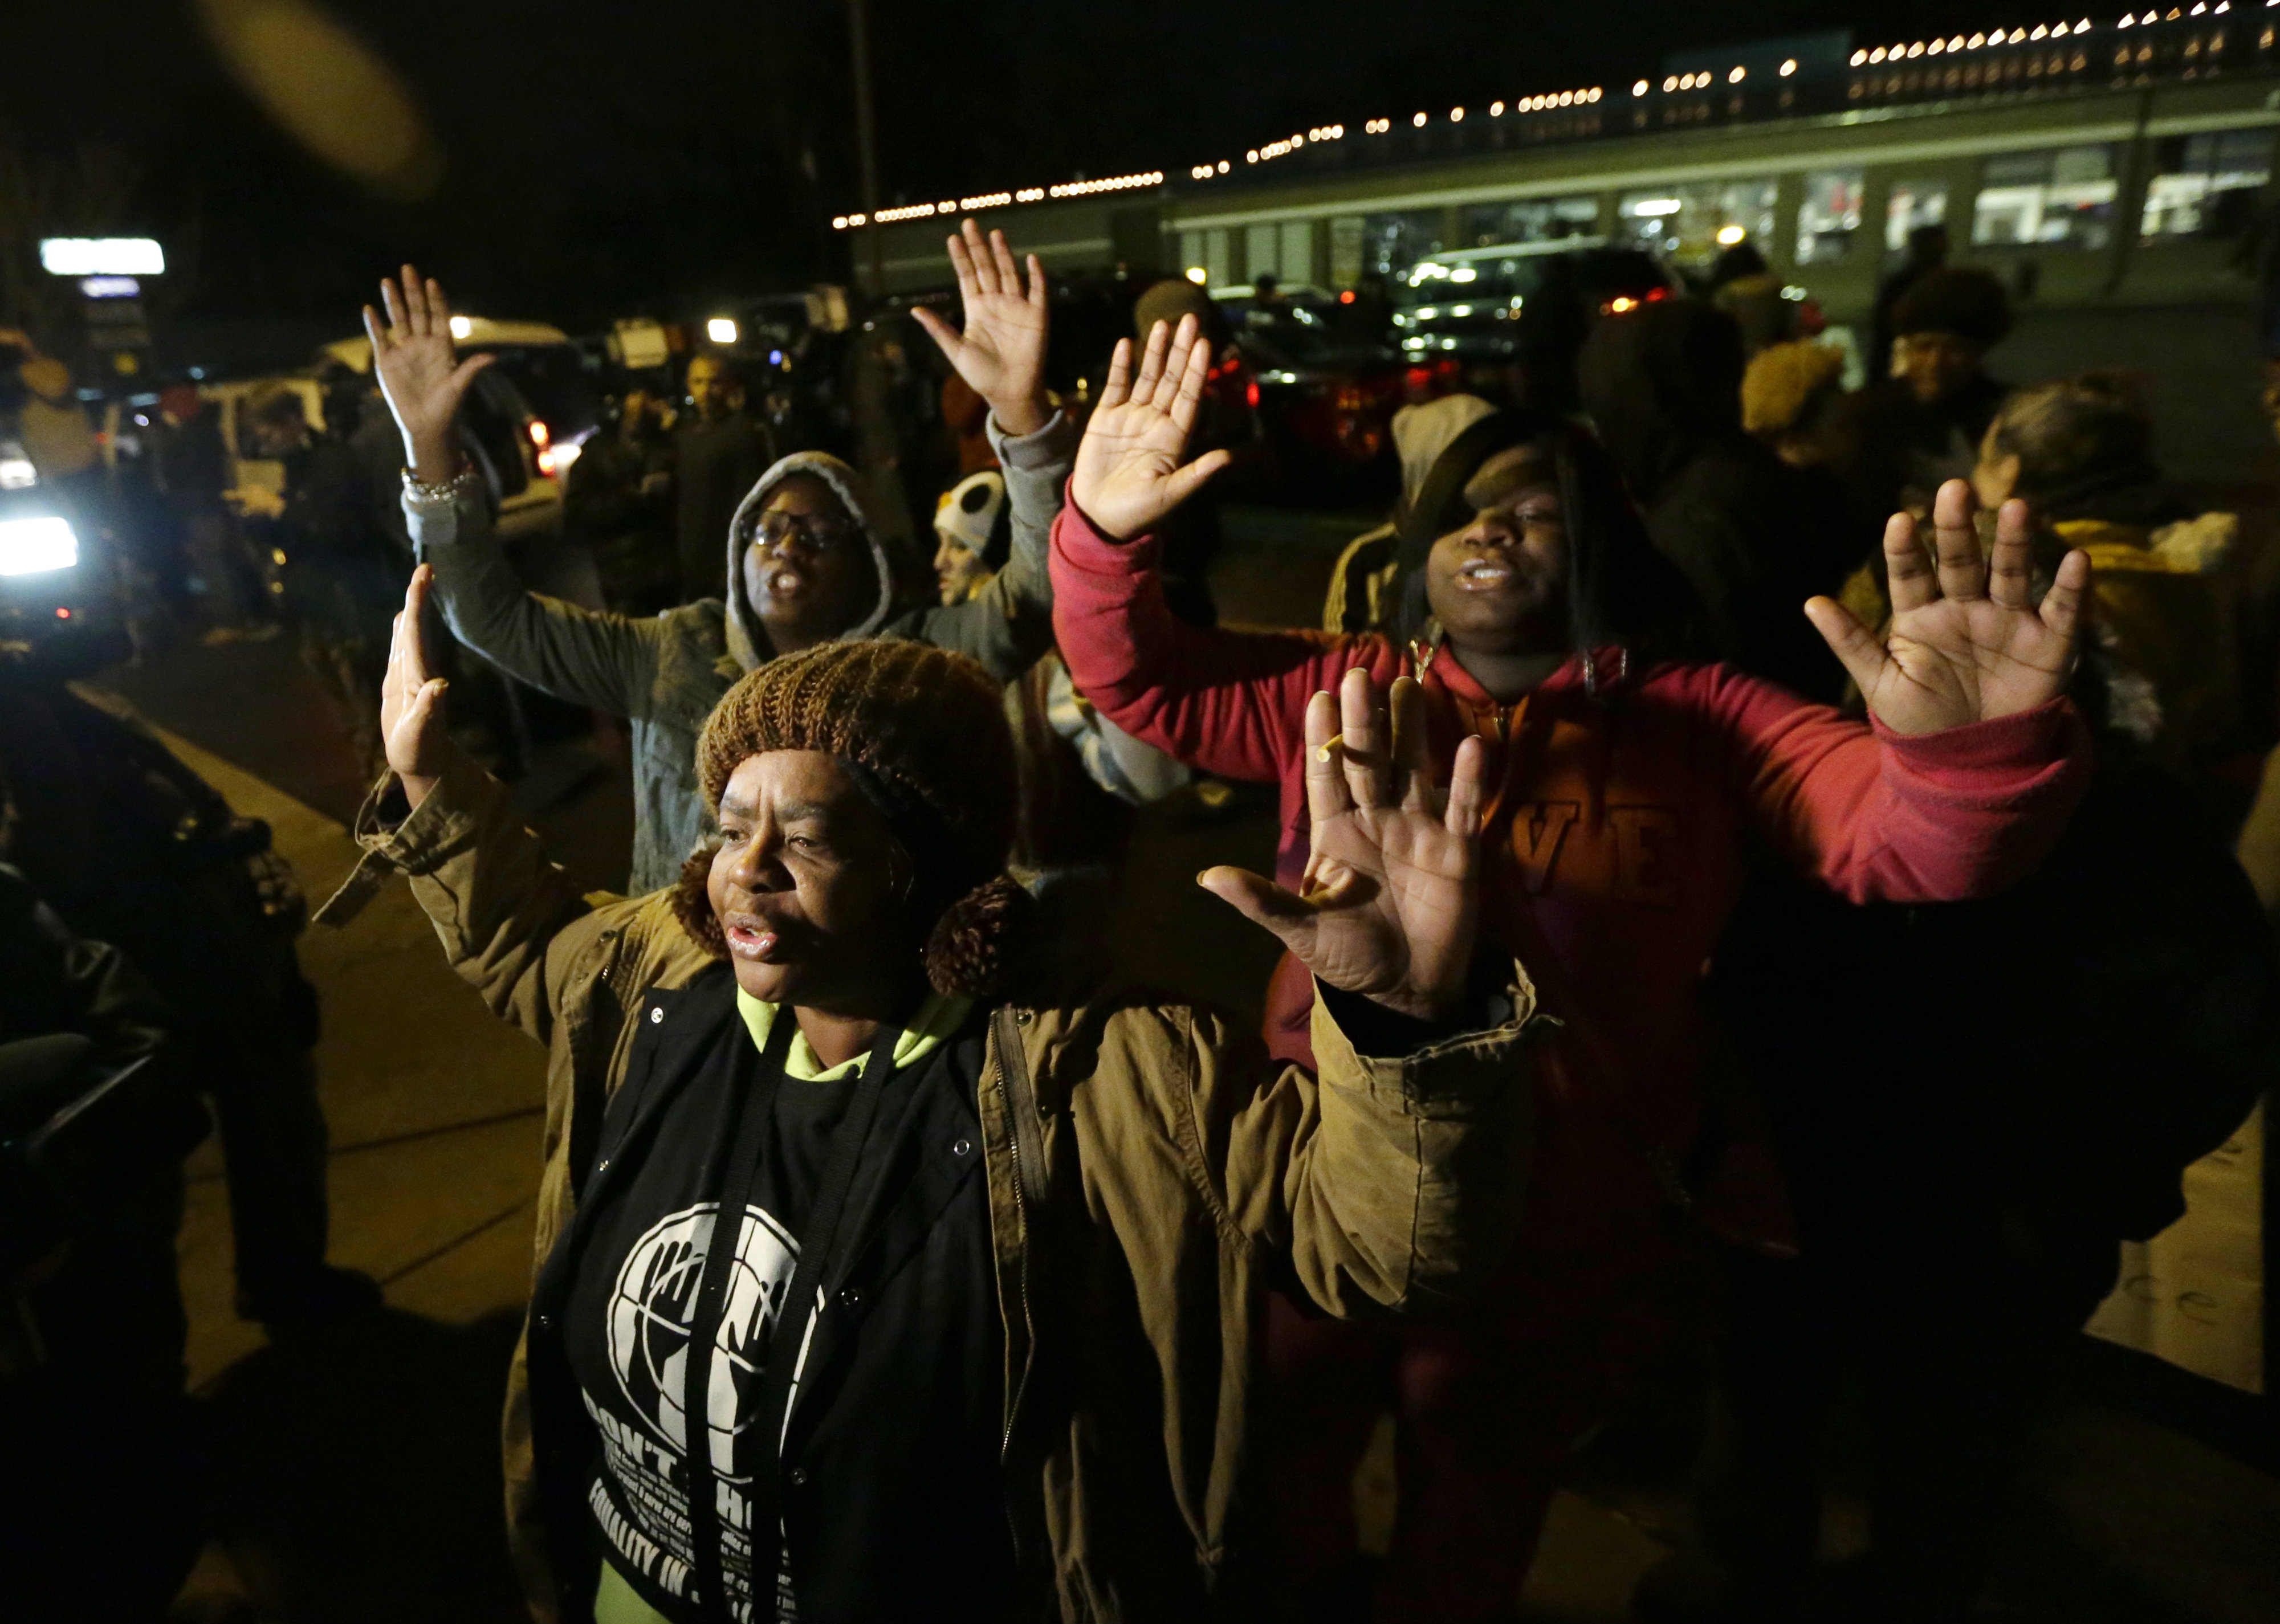 Barbara Jones, joined by other protesters, raises her hands, Monday, Nov. 24, 2014, in Ferguson, Mo., more than three months after an unarmed black 18-year-old man was shot and killed there by a white policeman.